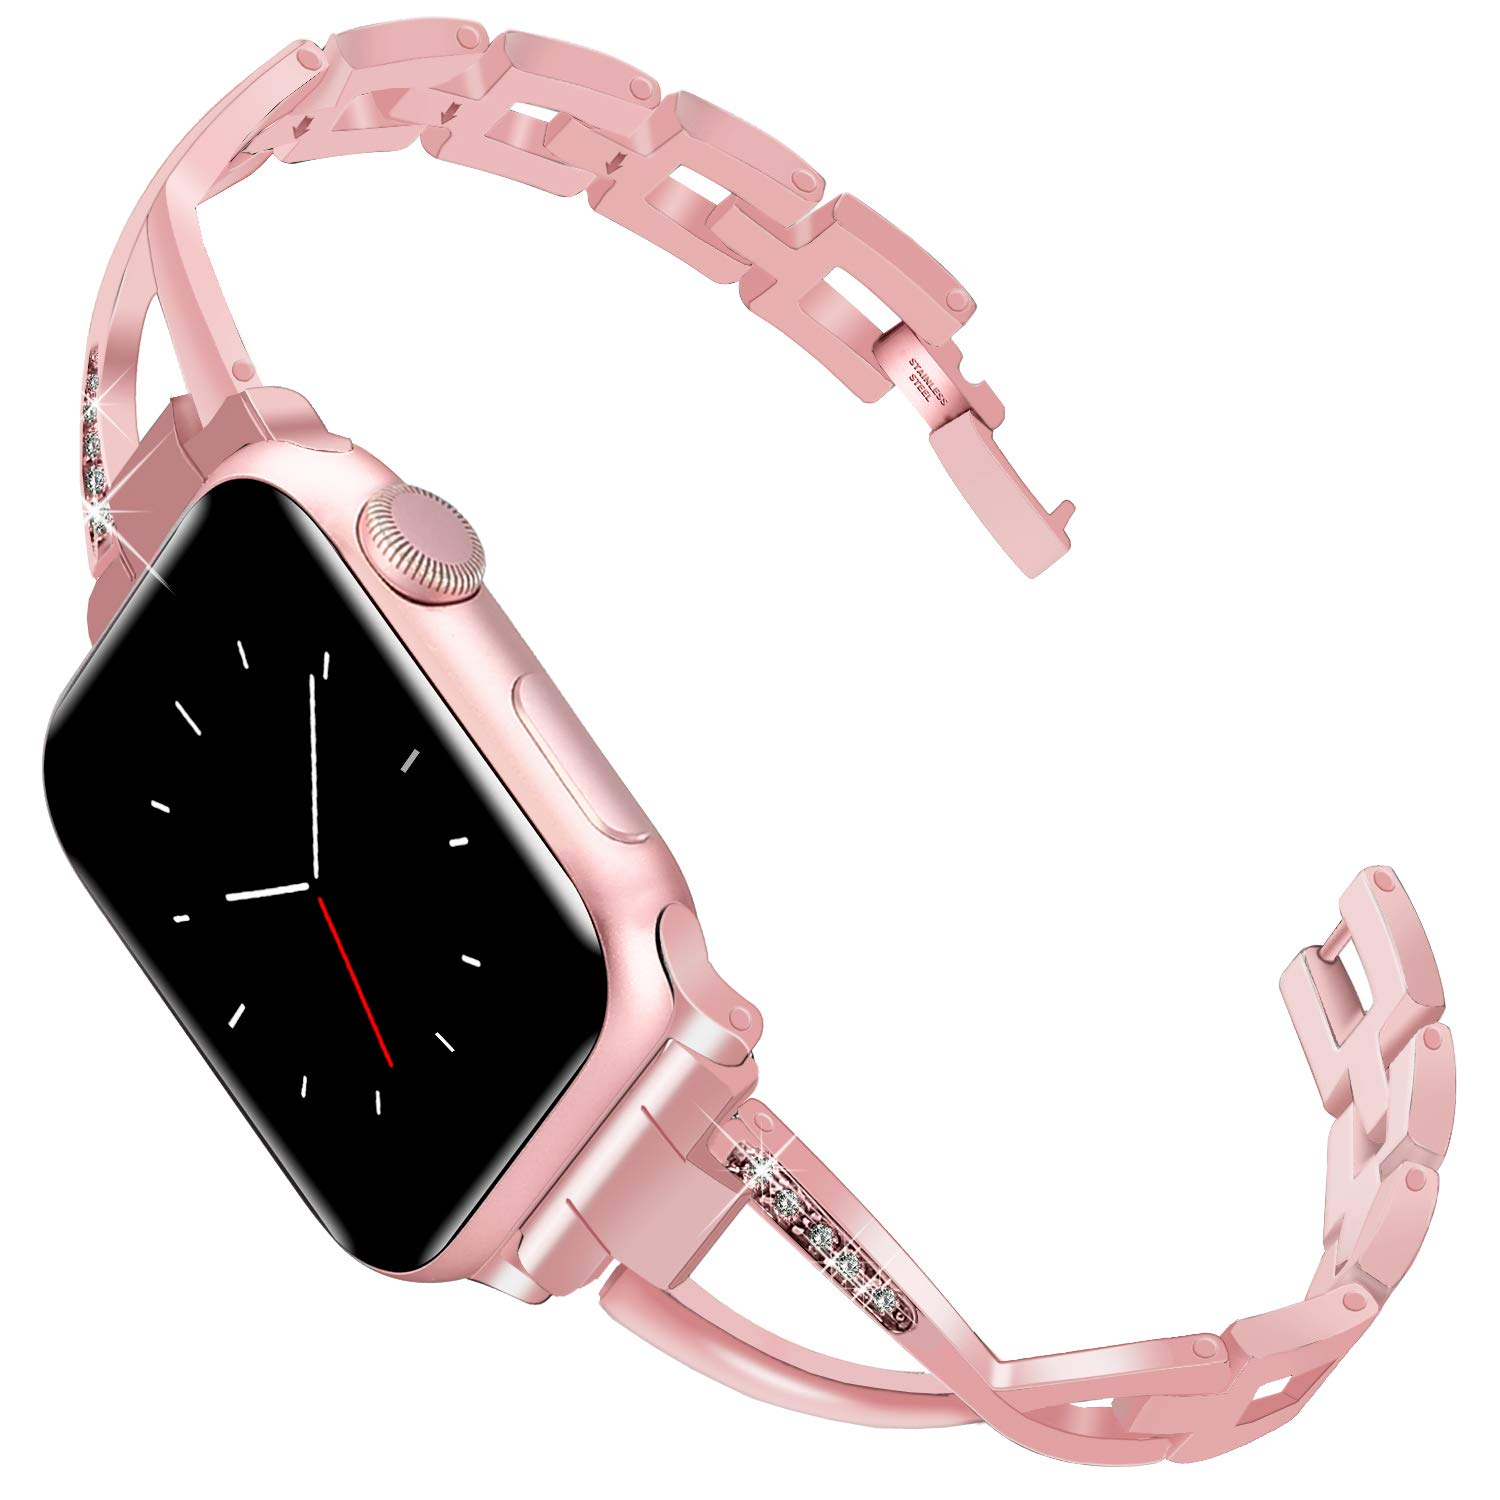 Lwsengme Compatible with Apple Watch Band 38mm 42mm 40mm 44mm, Classic Women Watch Bracelet Wristband for iWatch Series 4 Series 3 Series 2 Series 1